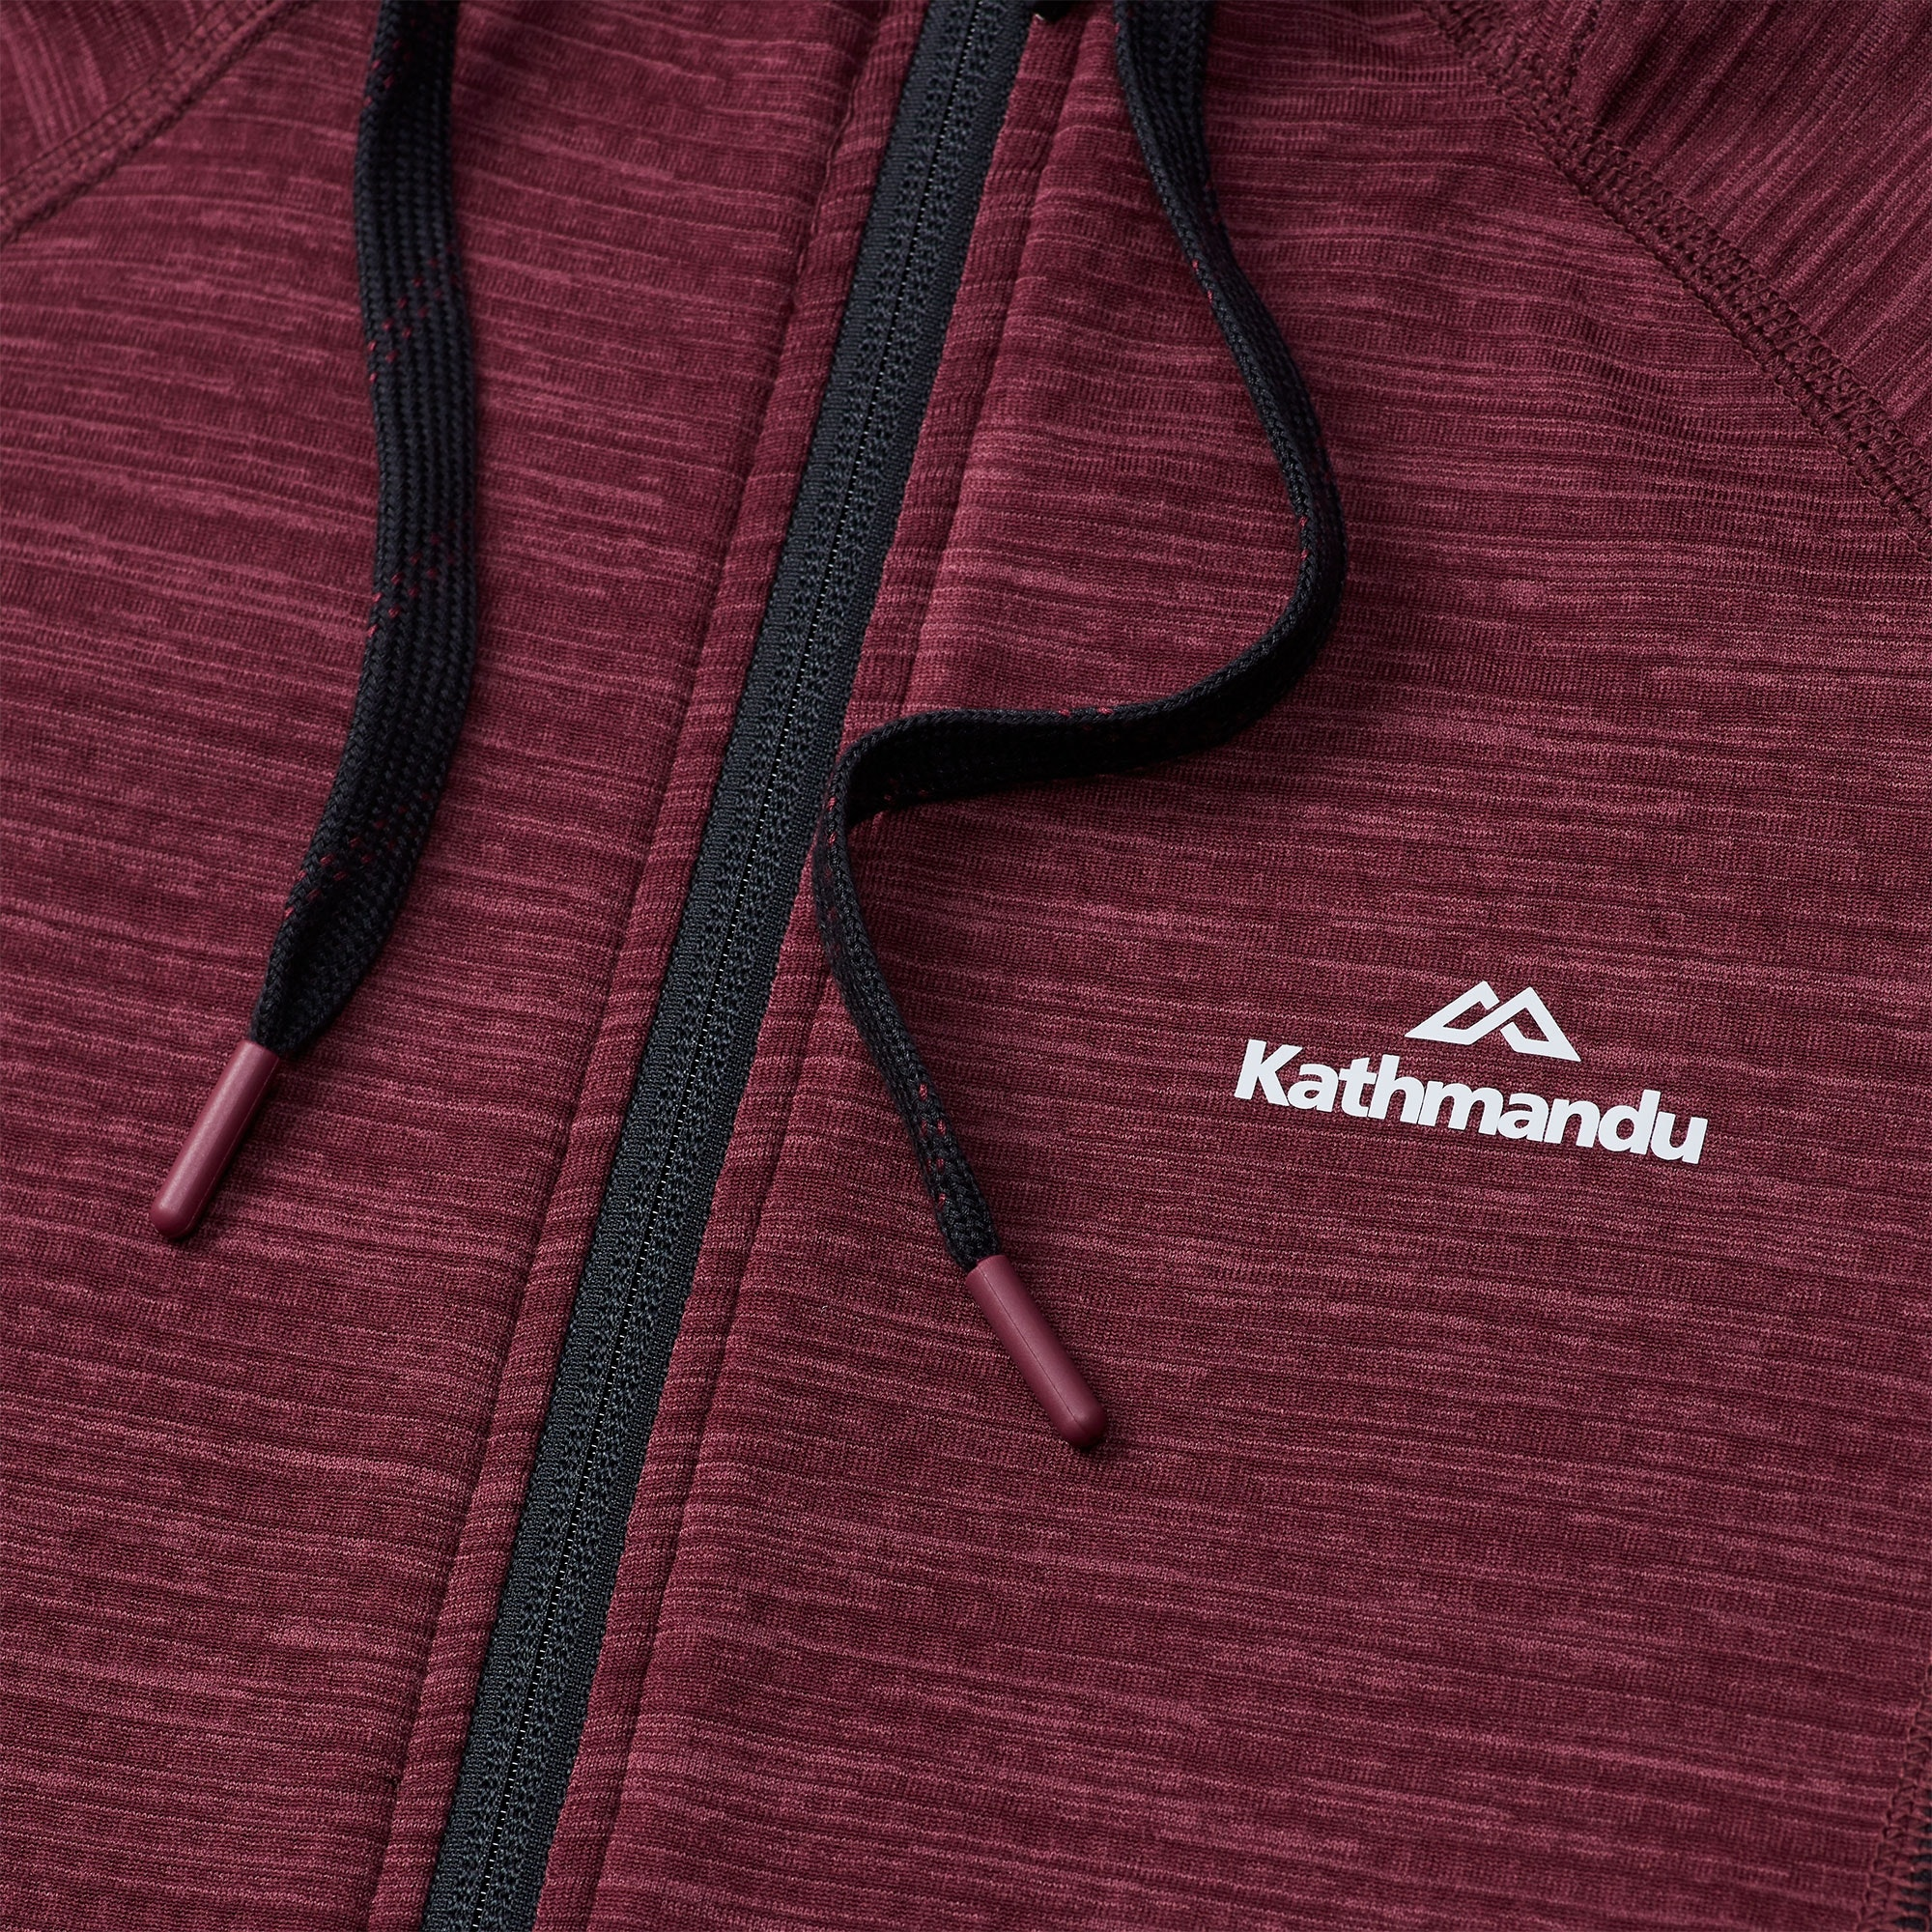 NEW-Kathmandu-Acota-Women-s-Hooded-Fleece-Lightweight-Breathable-Outdoor-Jacket thumbnail 20